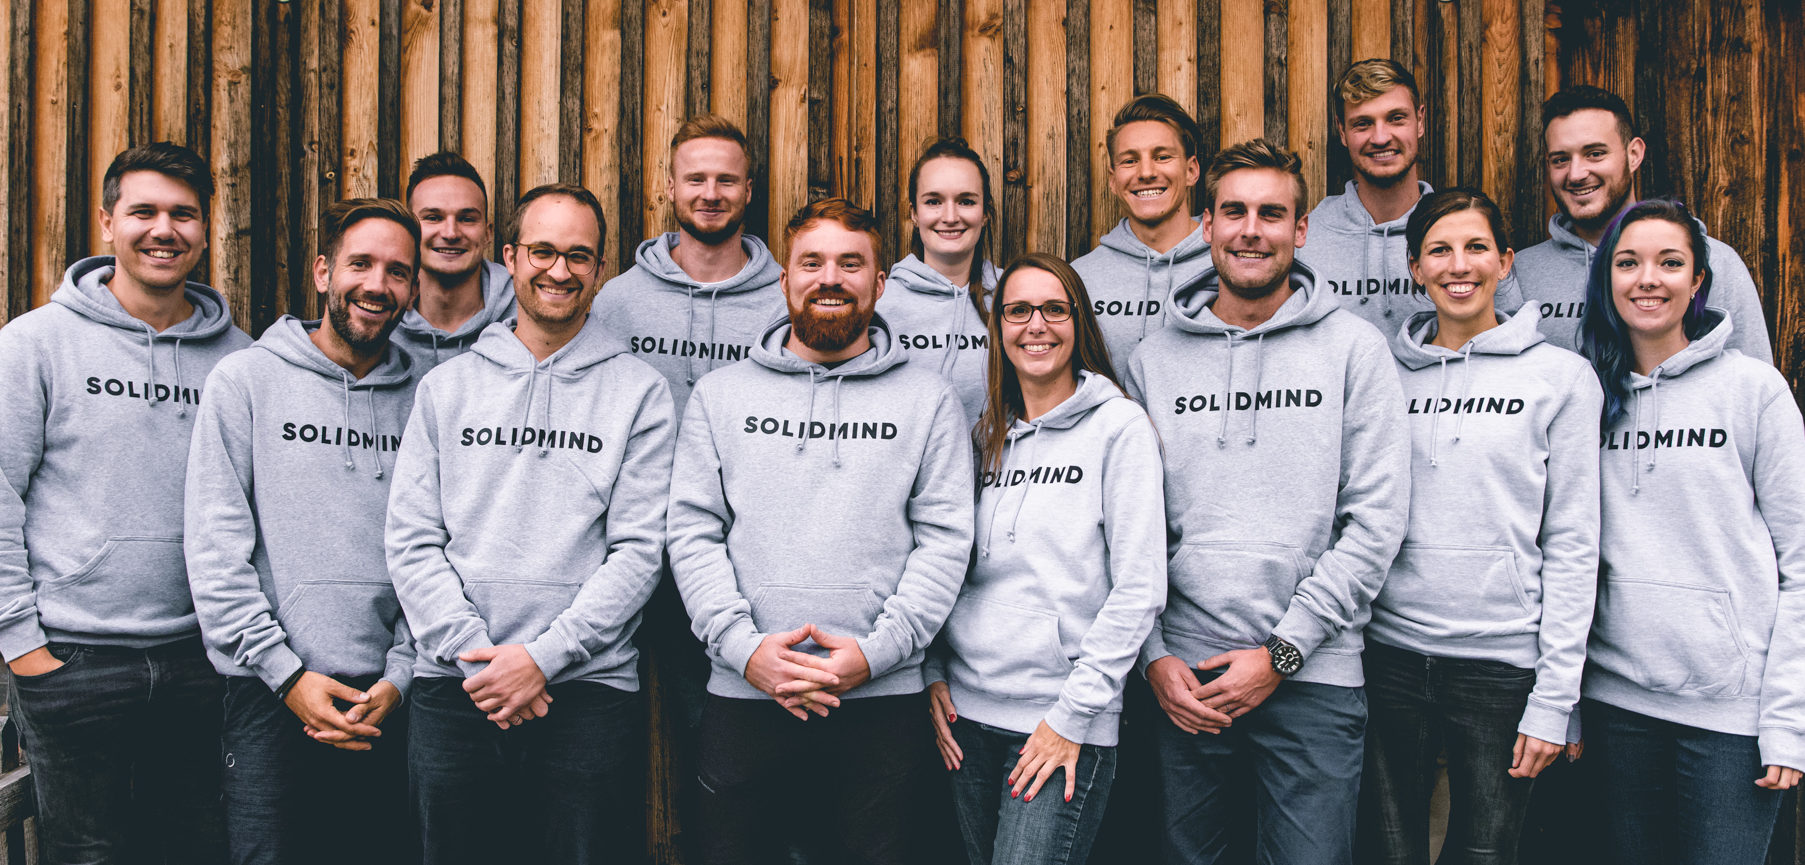 Teamfoto von Solidmind/Hempamed